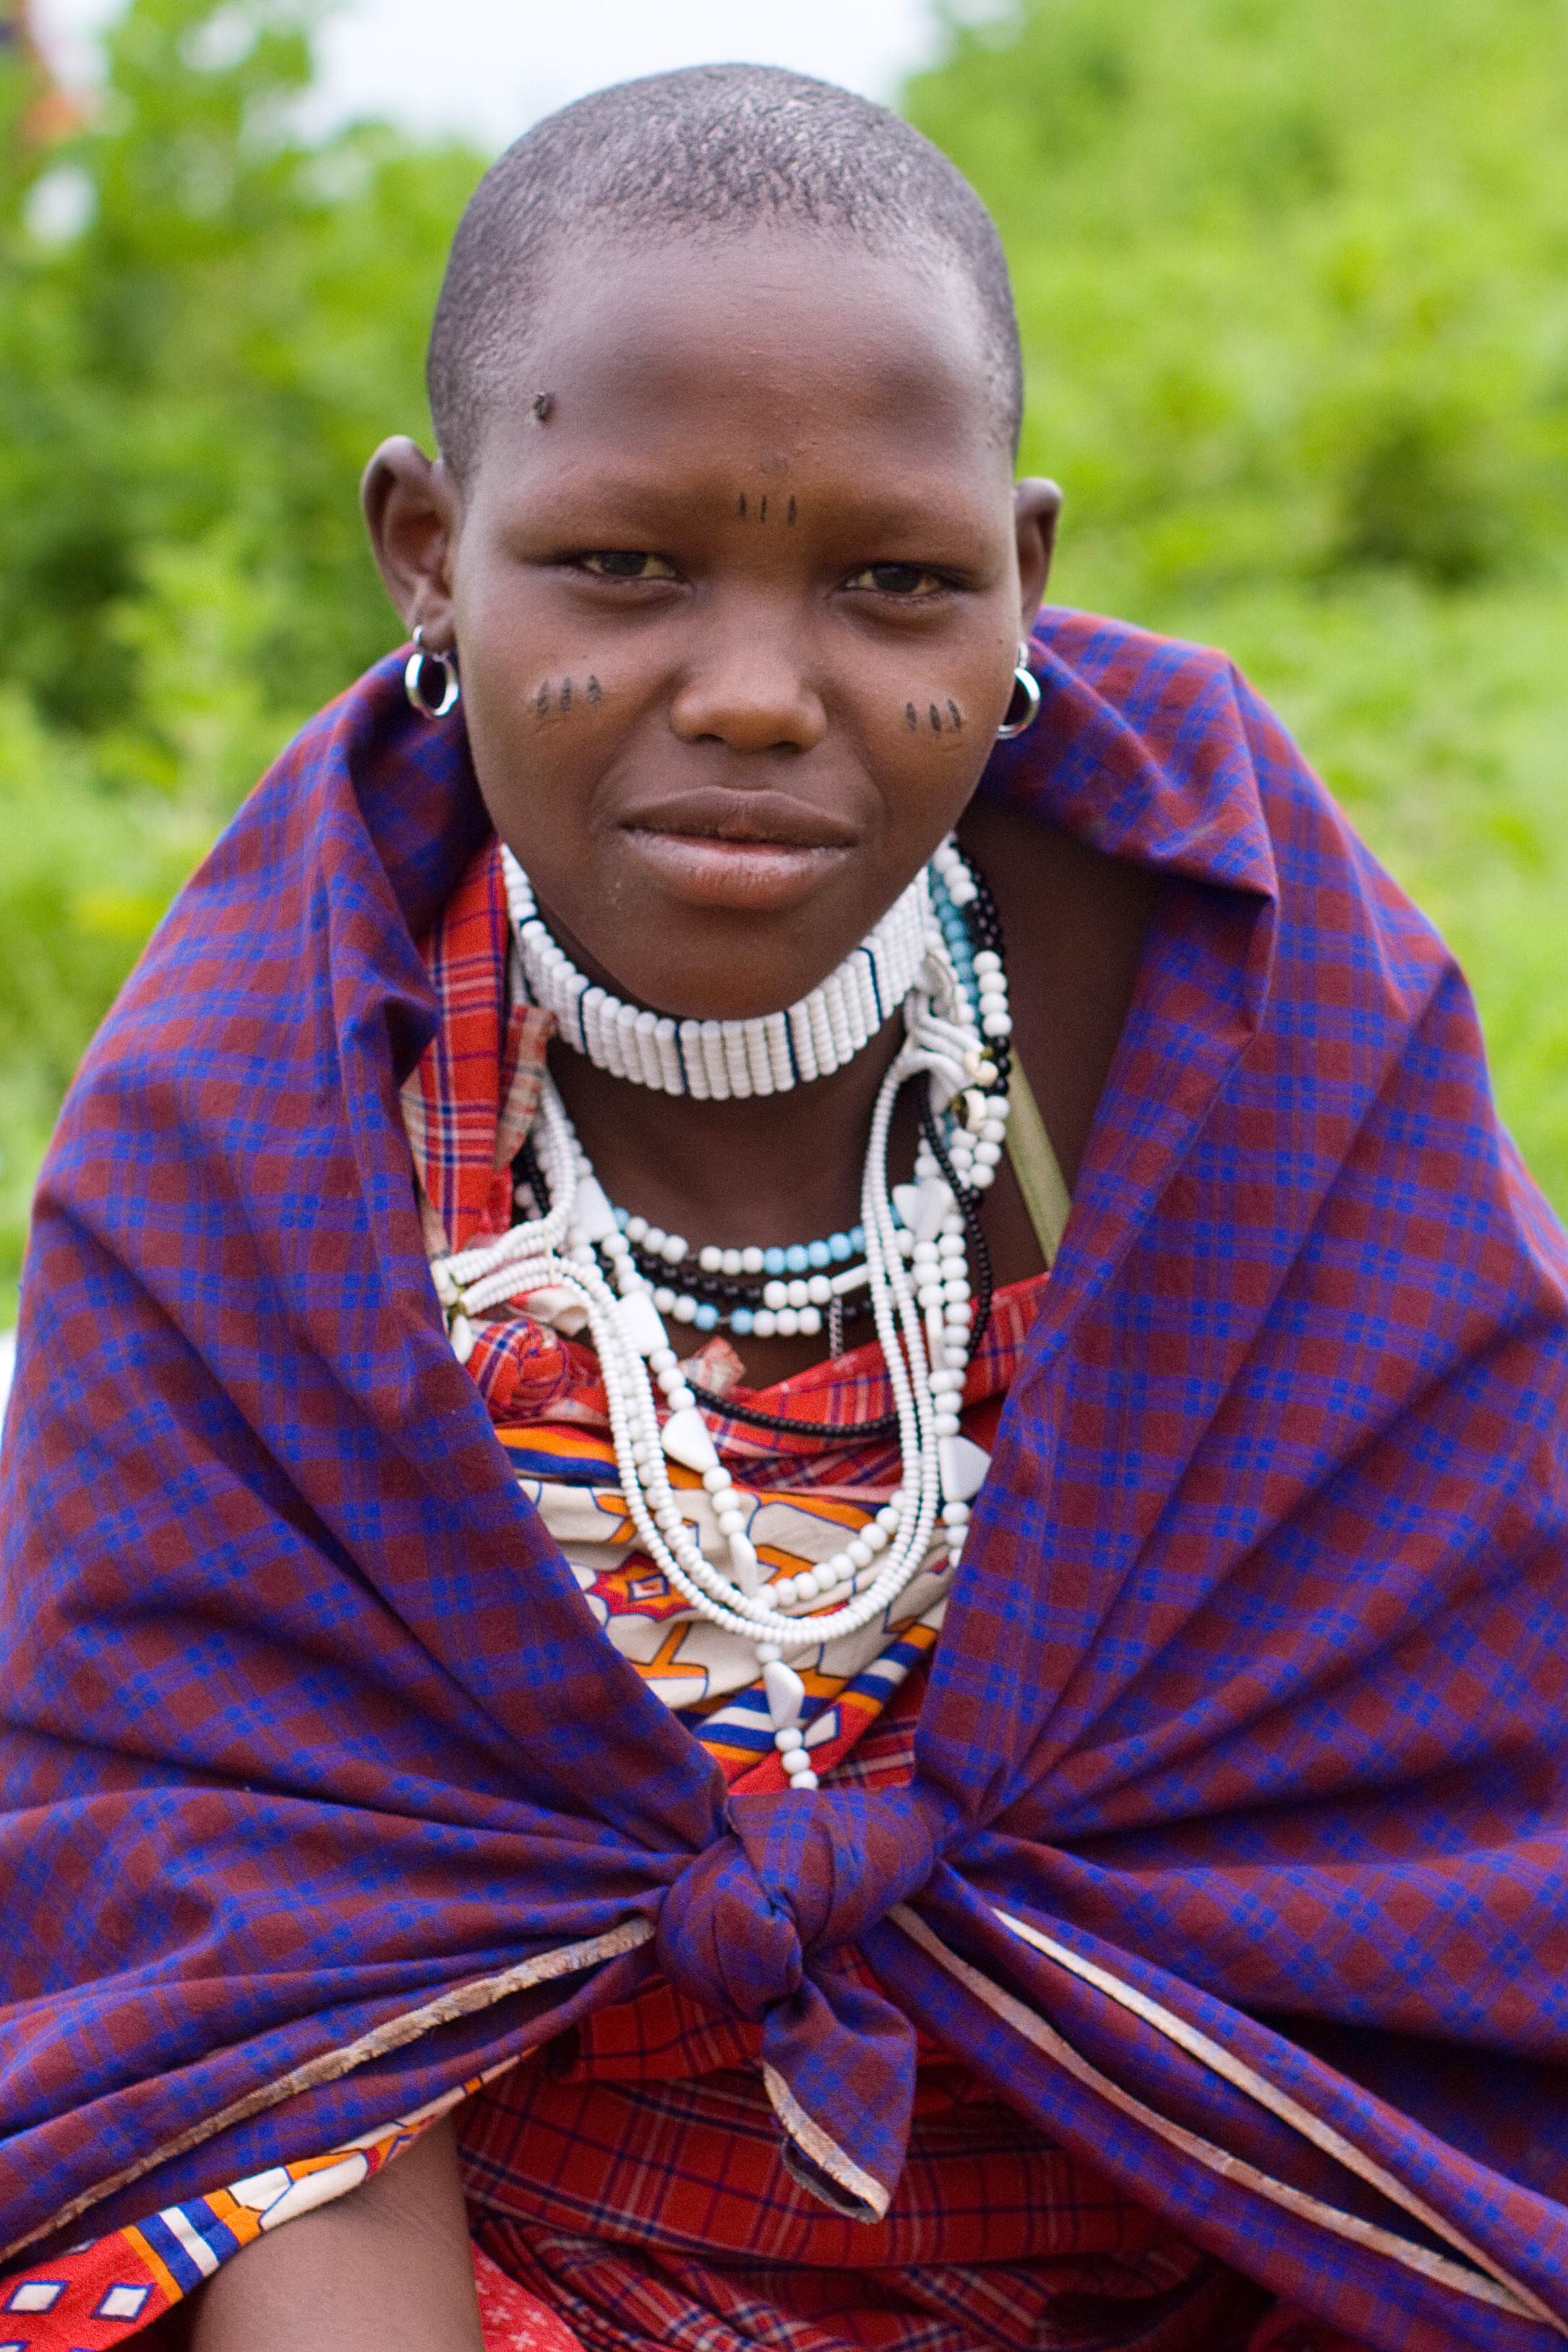 Travel_Photographer_Tanzania_005.jpg